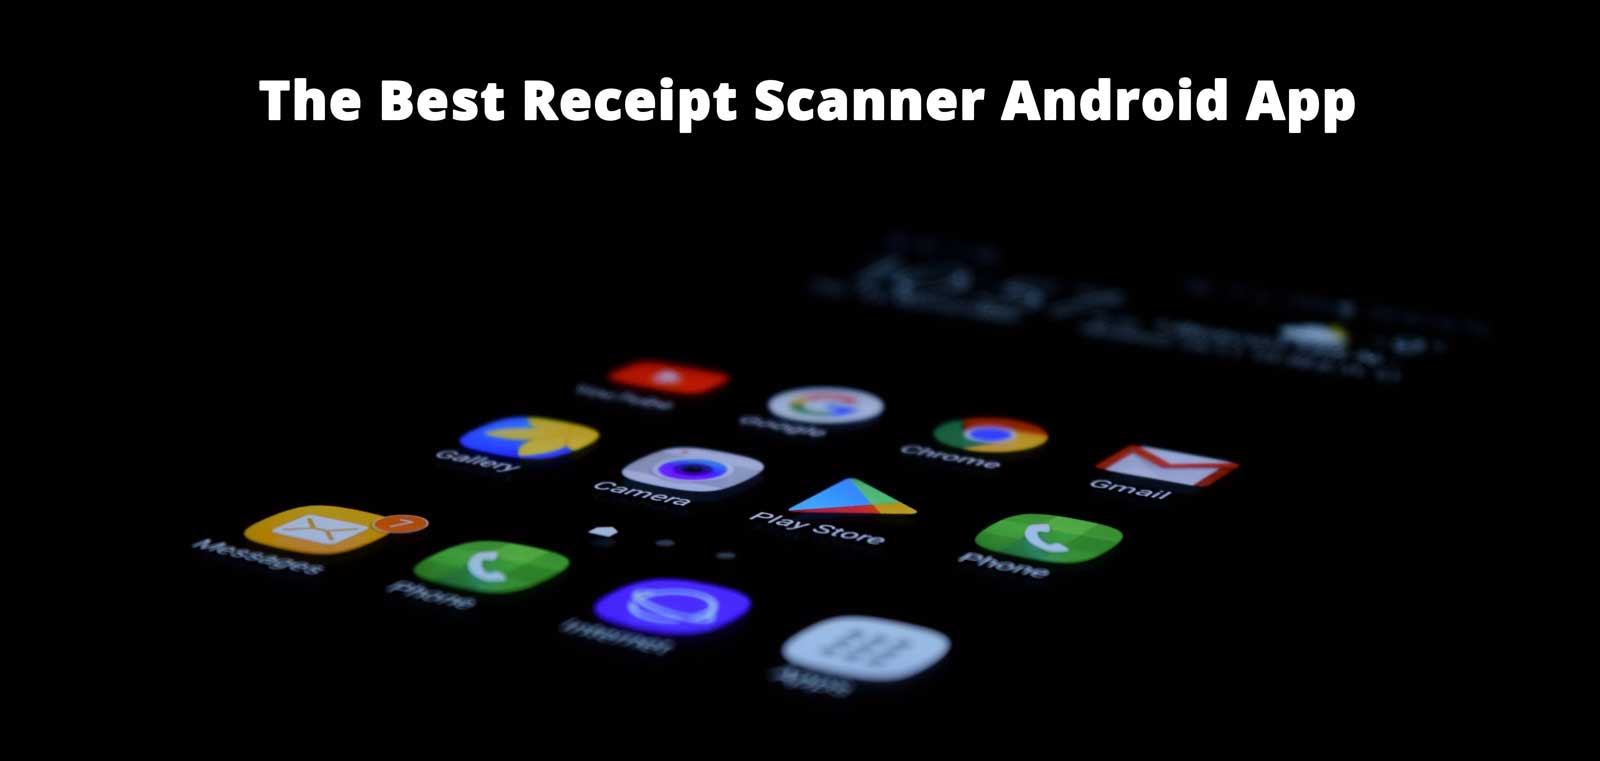 The Best Receipt Scanner Android App in 2019 (with screenshots), by a top Android Developer